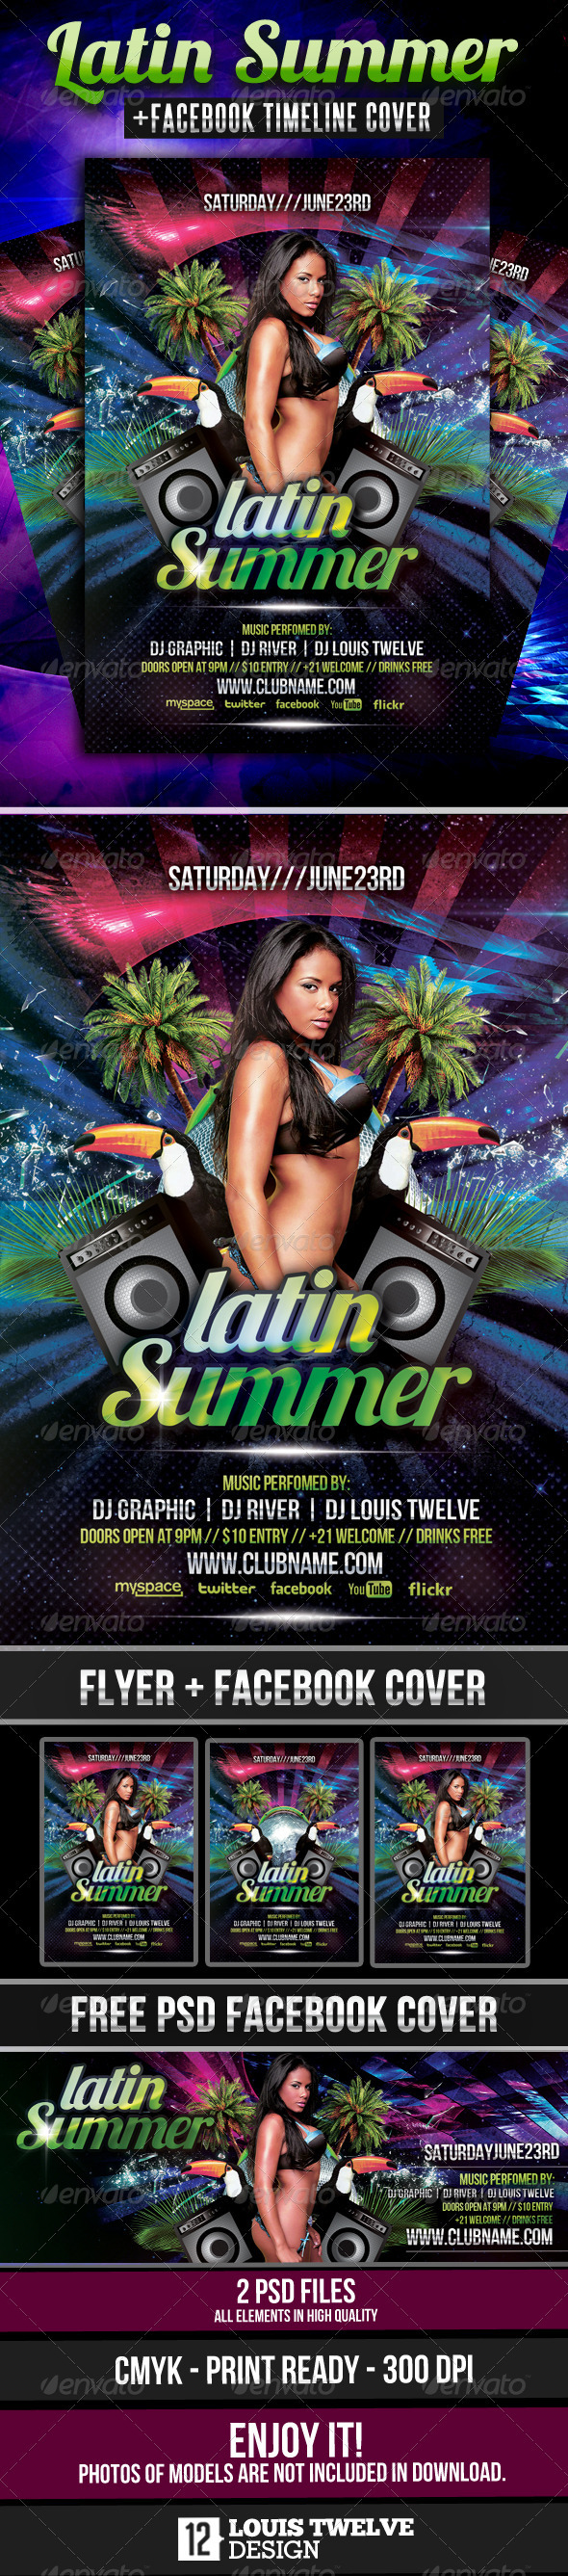 Latin Summer #2 Party Flyer + Facebook Cover - Clubs & Parties Events